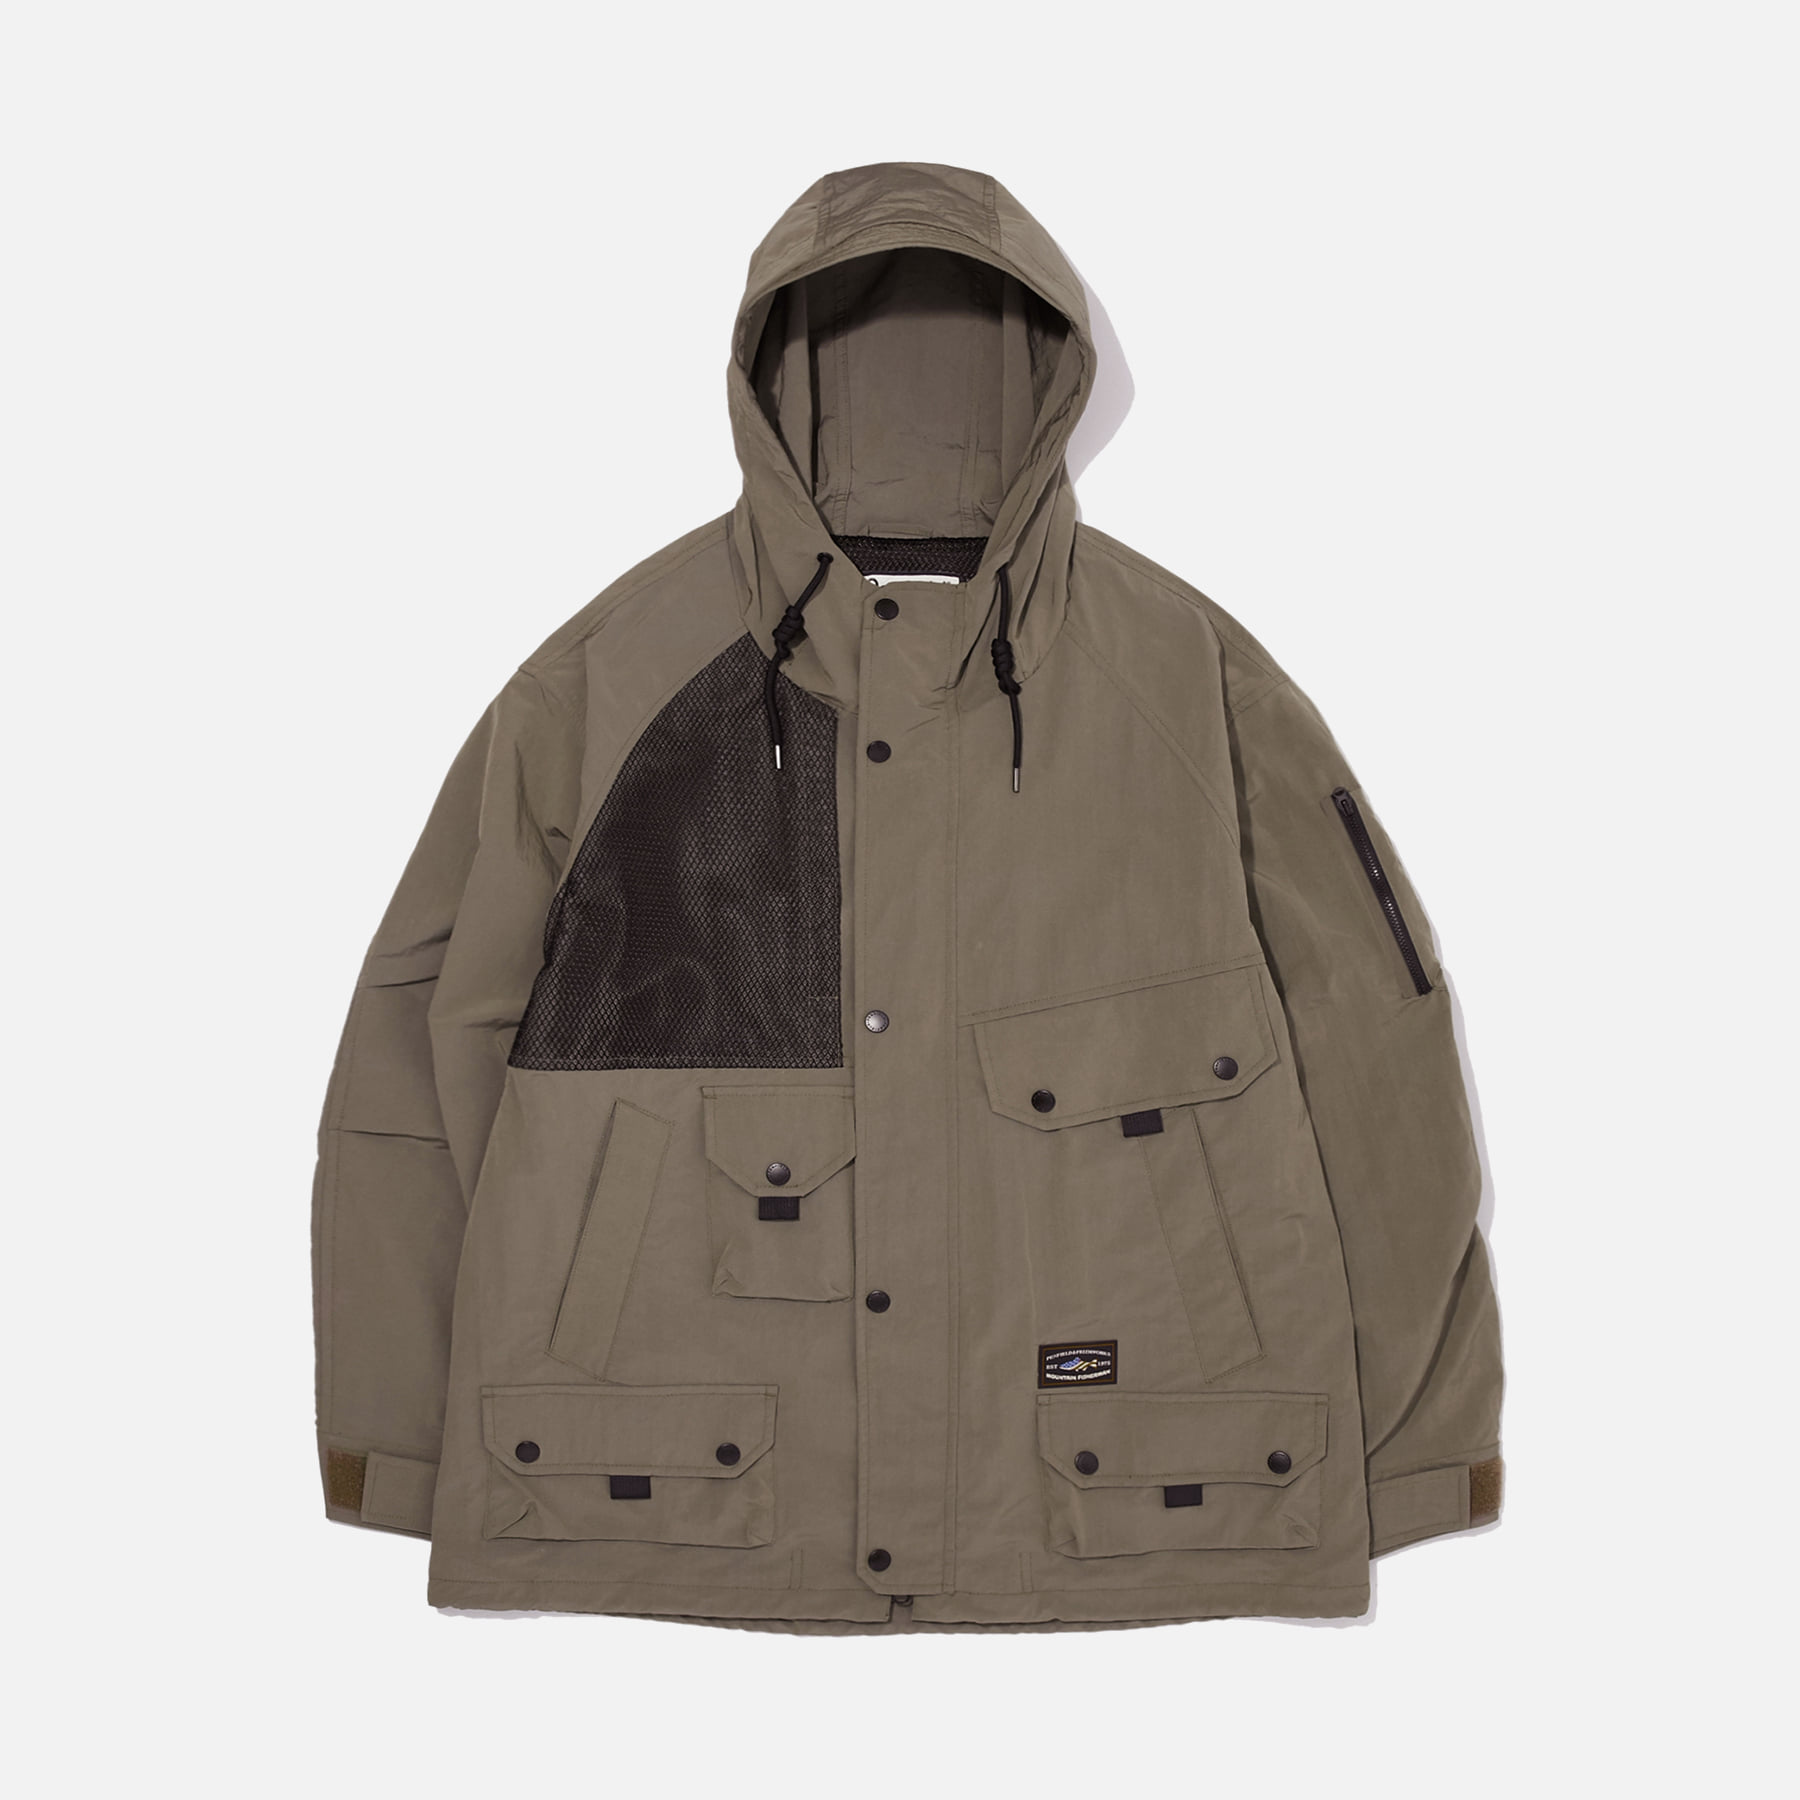 [PENFIELD X FRIZMWORKS] Utility cargo pocket setup jacket _ light brown